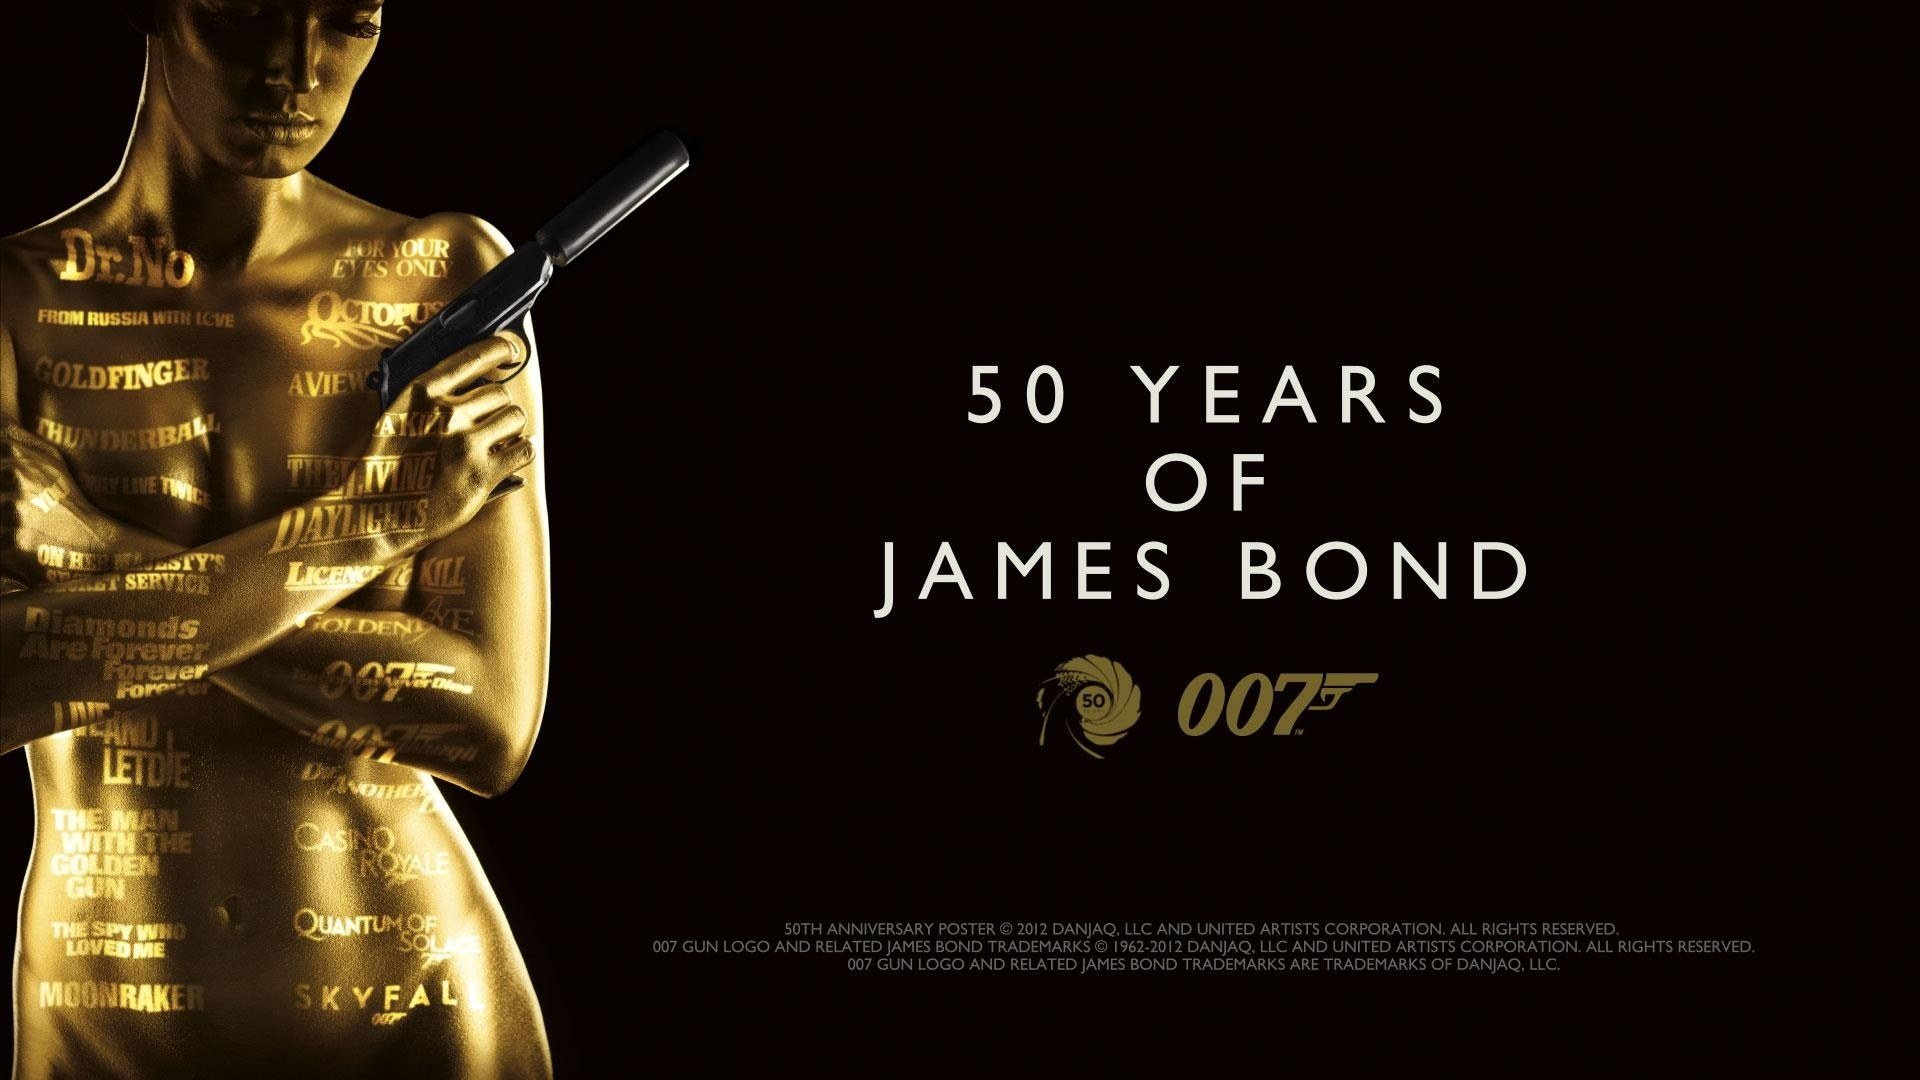 Film - James Bond Sfondi